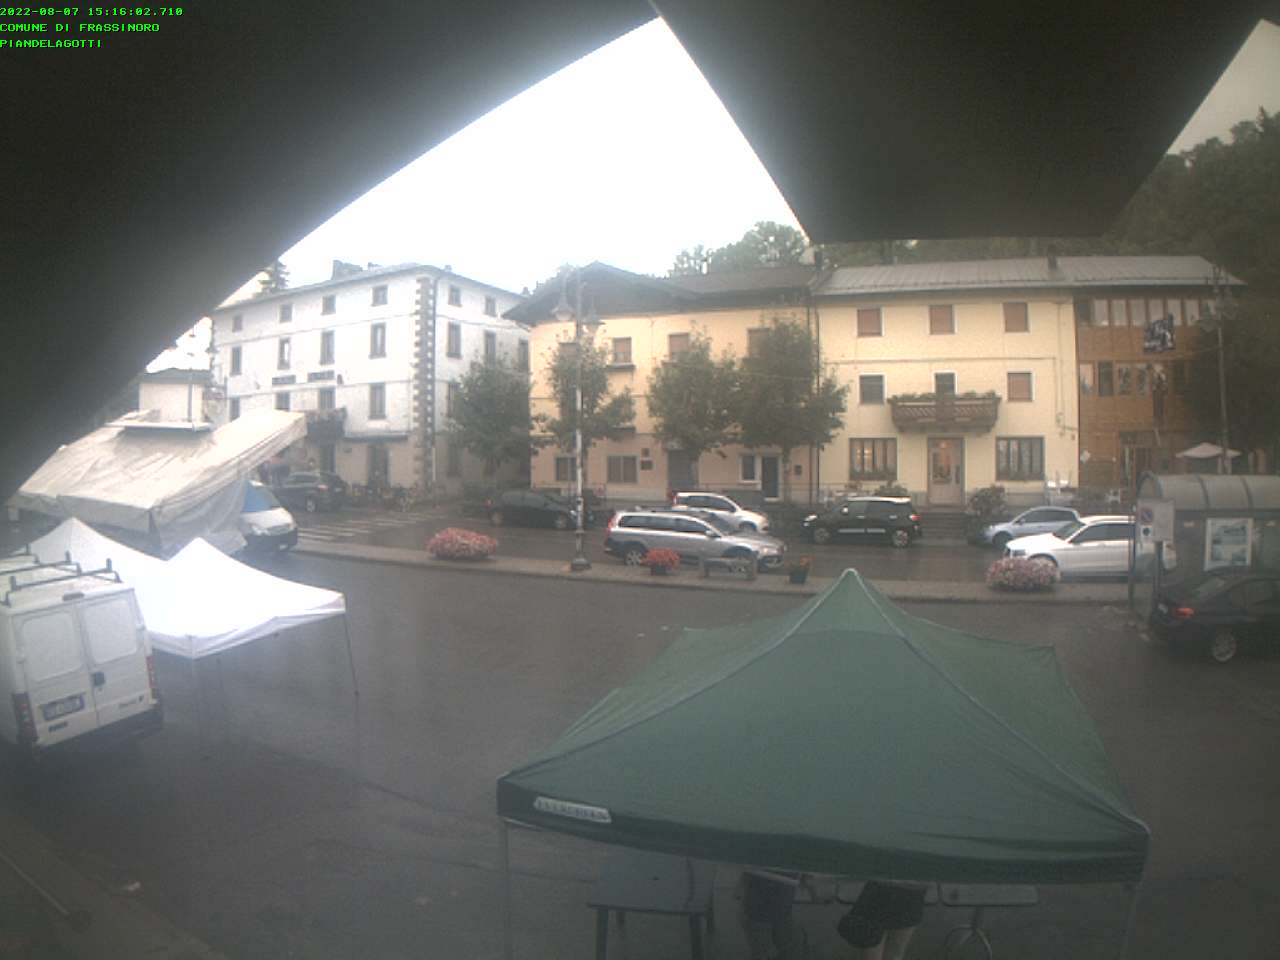 webcam frassinoro n. 1563